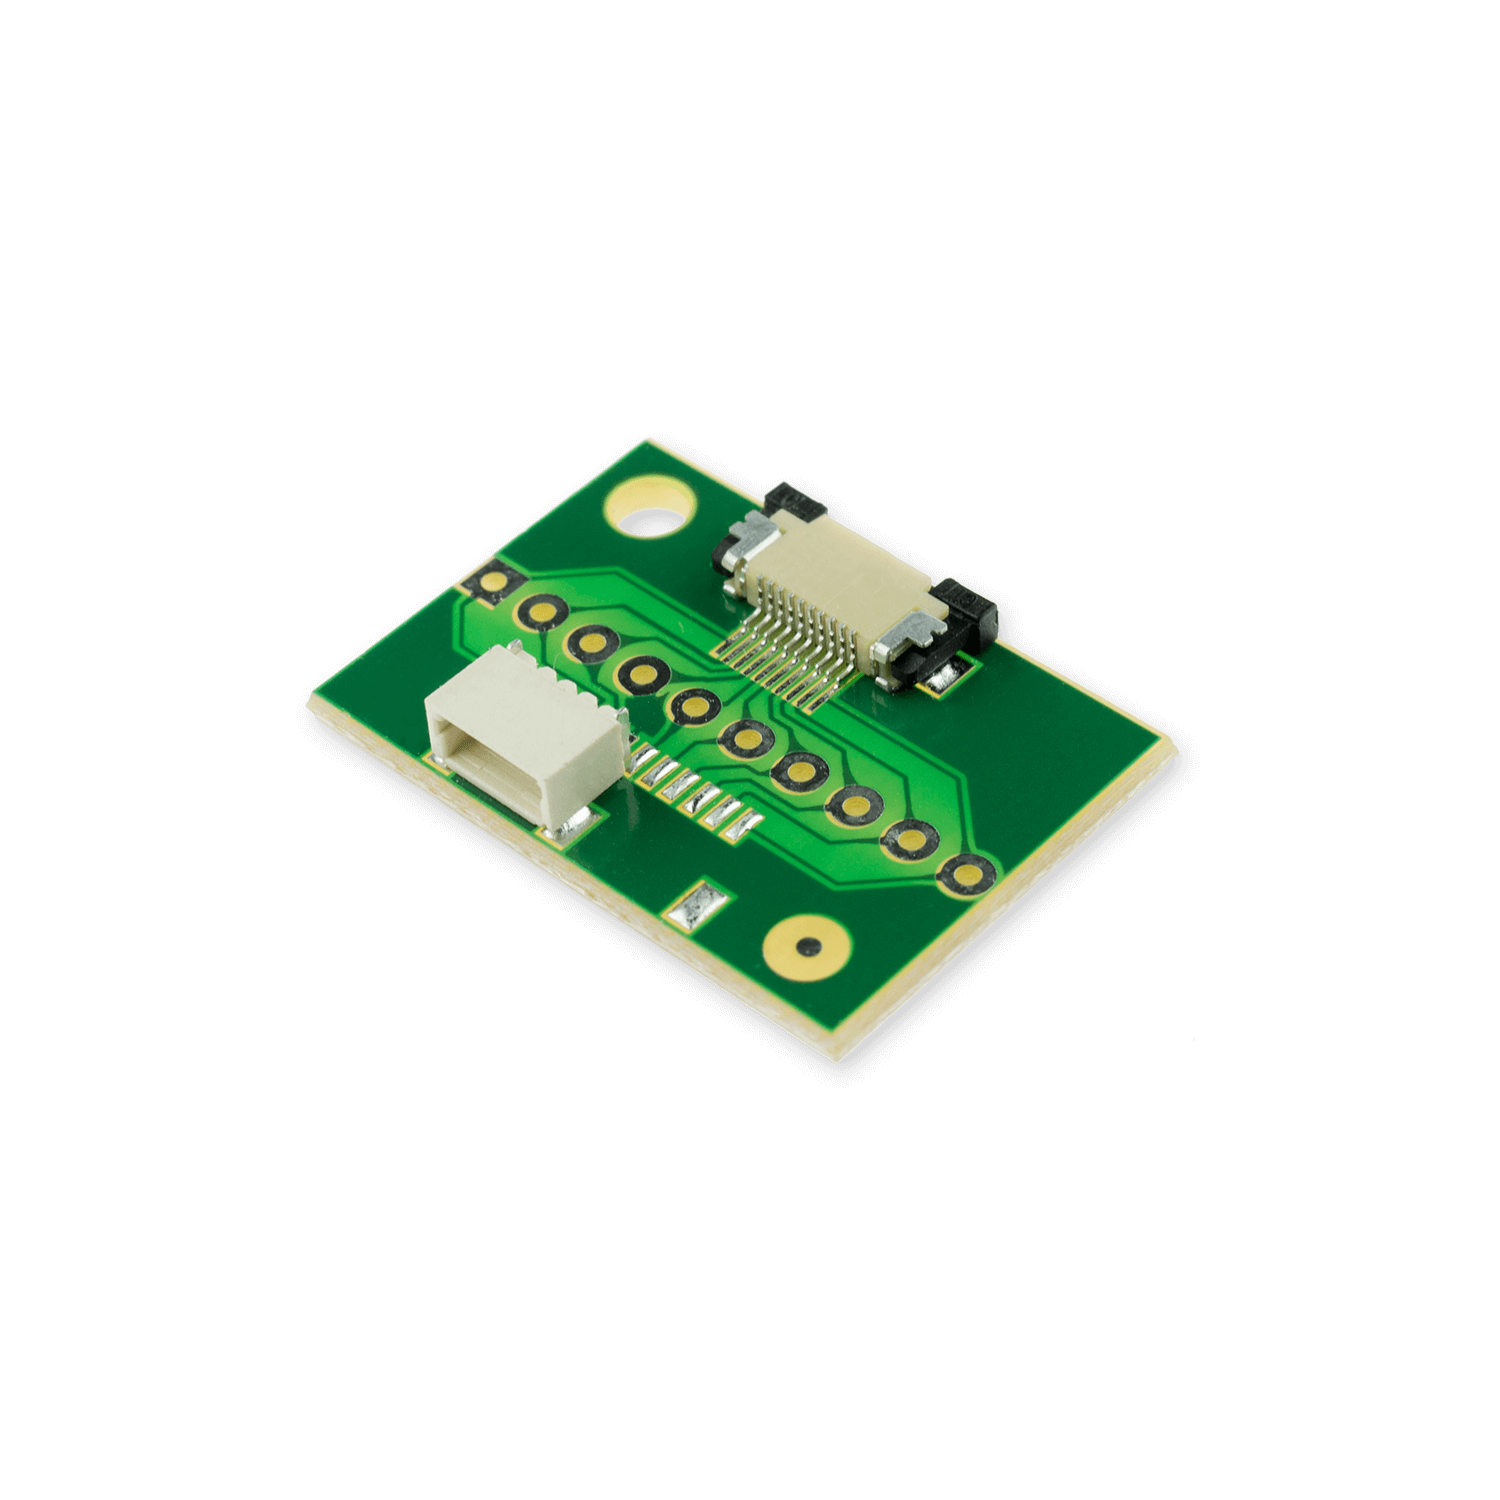 CTA-UNI-AMTBB01 – USB - UART bridge board for AMT's capacitive screens